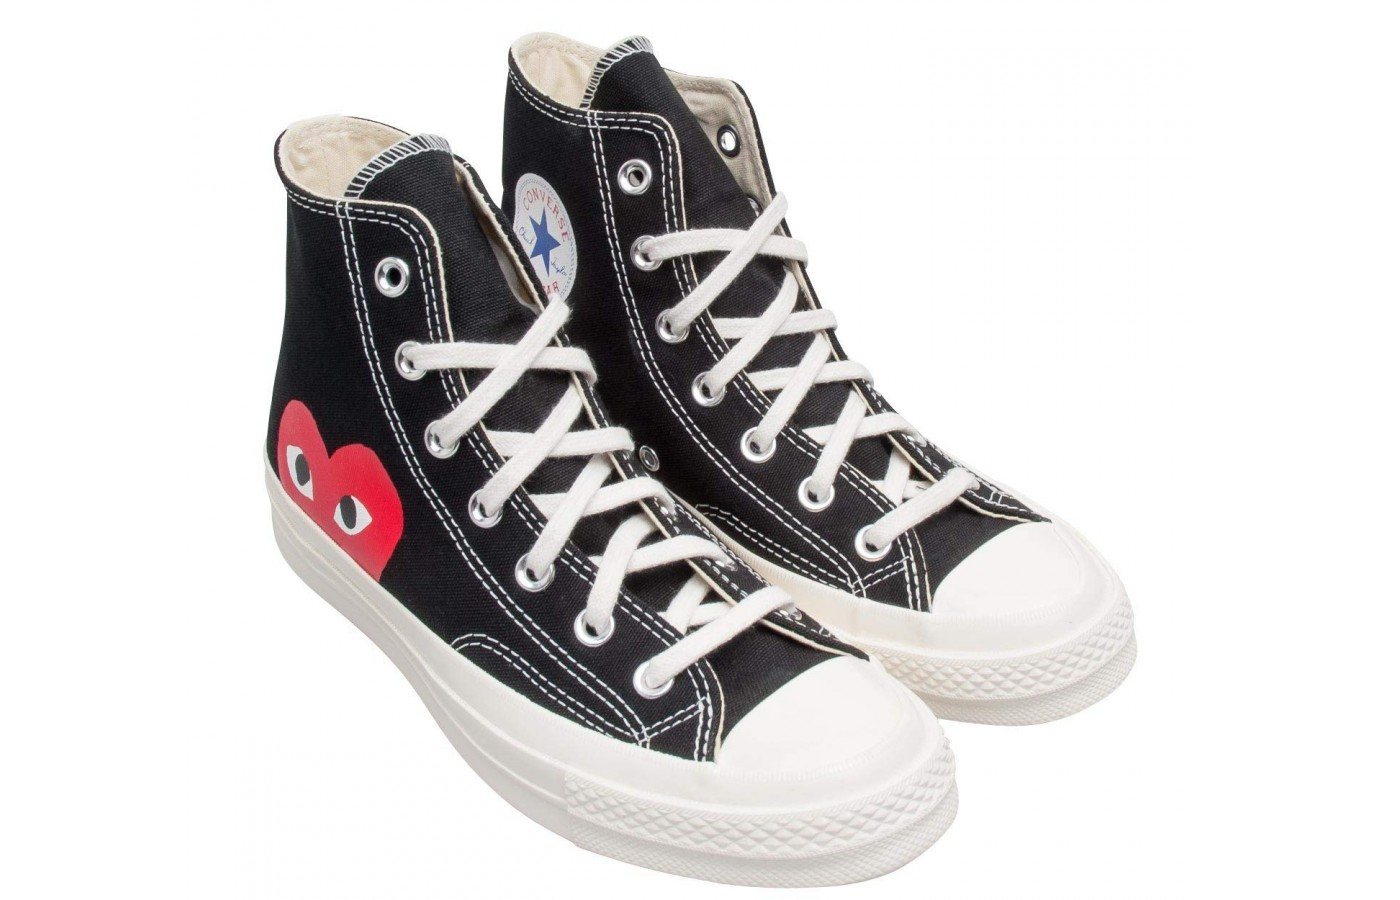 d6faa9498b025e Converse Comme Des Garcons Play Reviewed. Side  Angle  Back